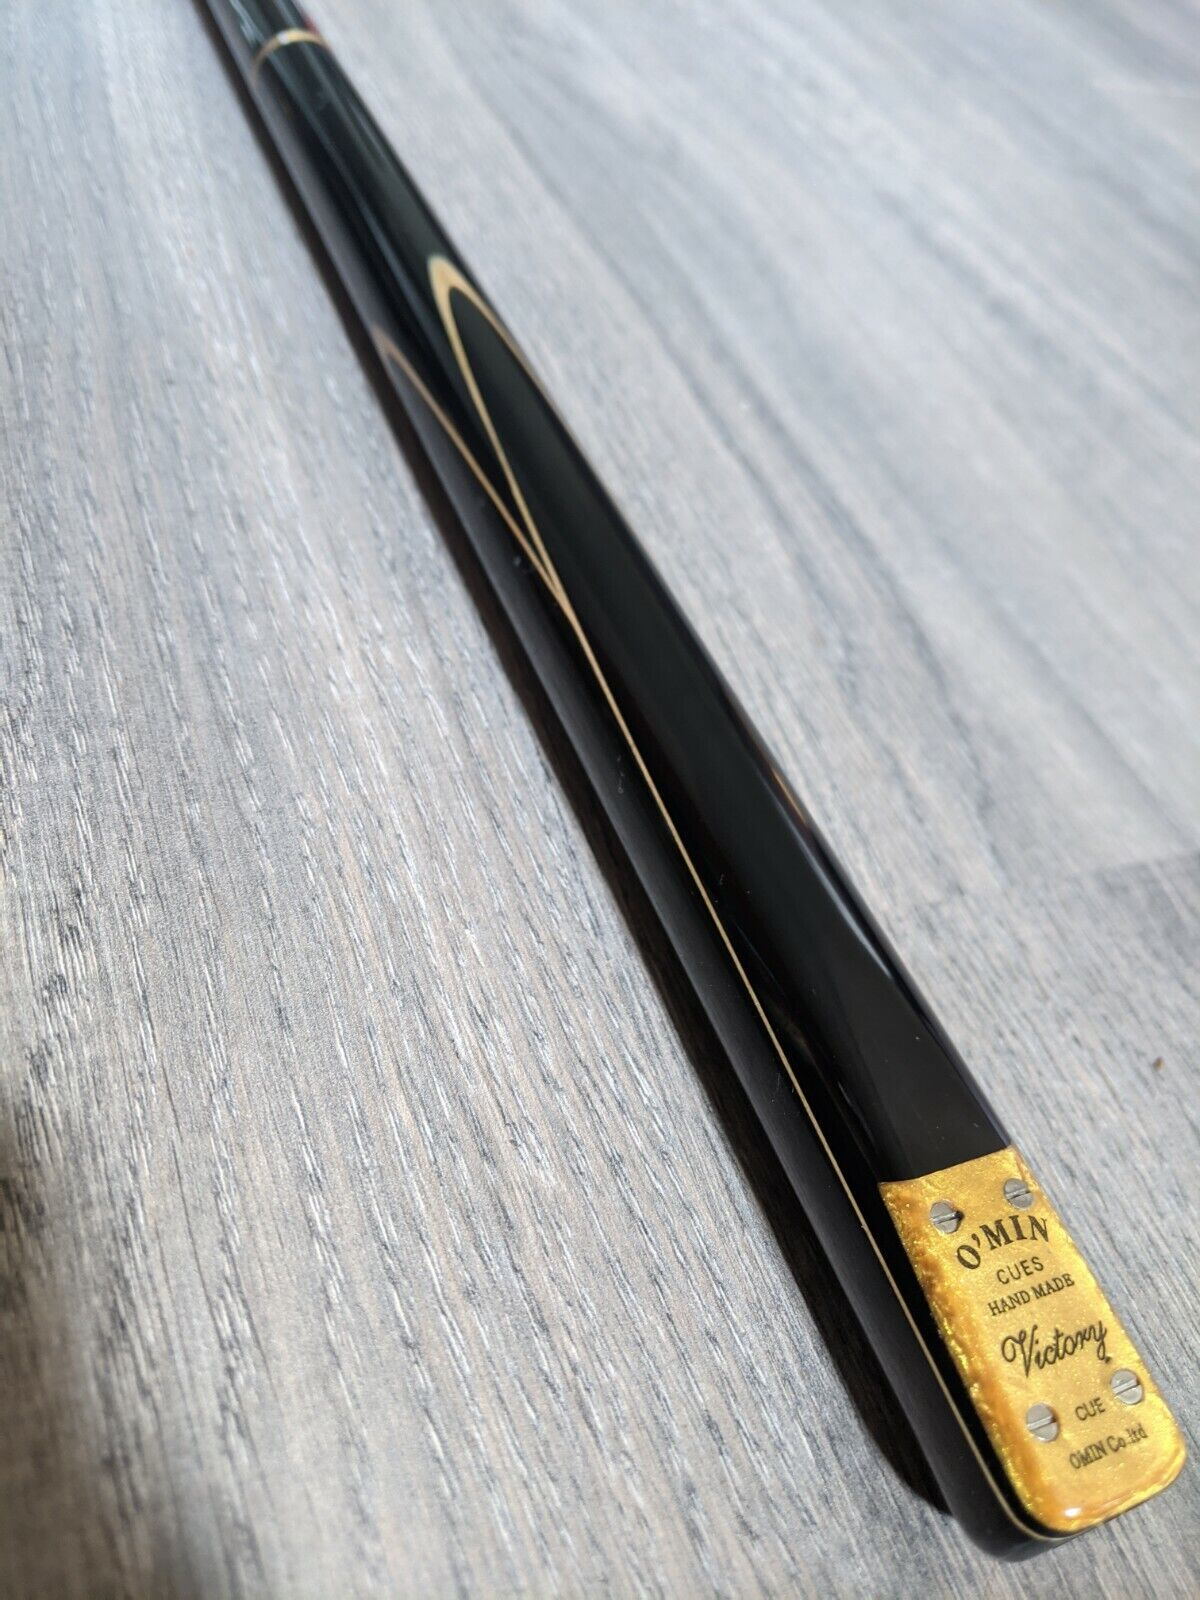 Omin Victory 3/4 Joint Snooker Cue with Mini Butt - WAS 175.00